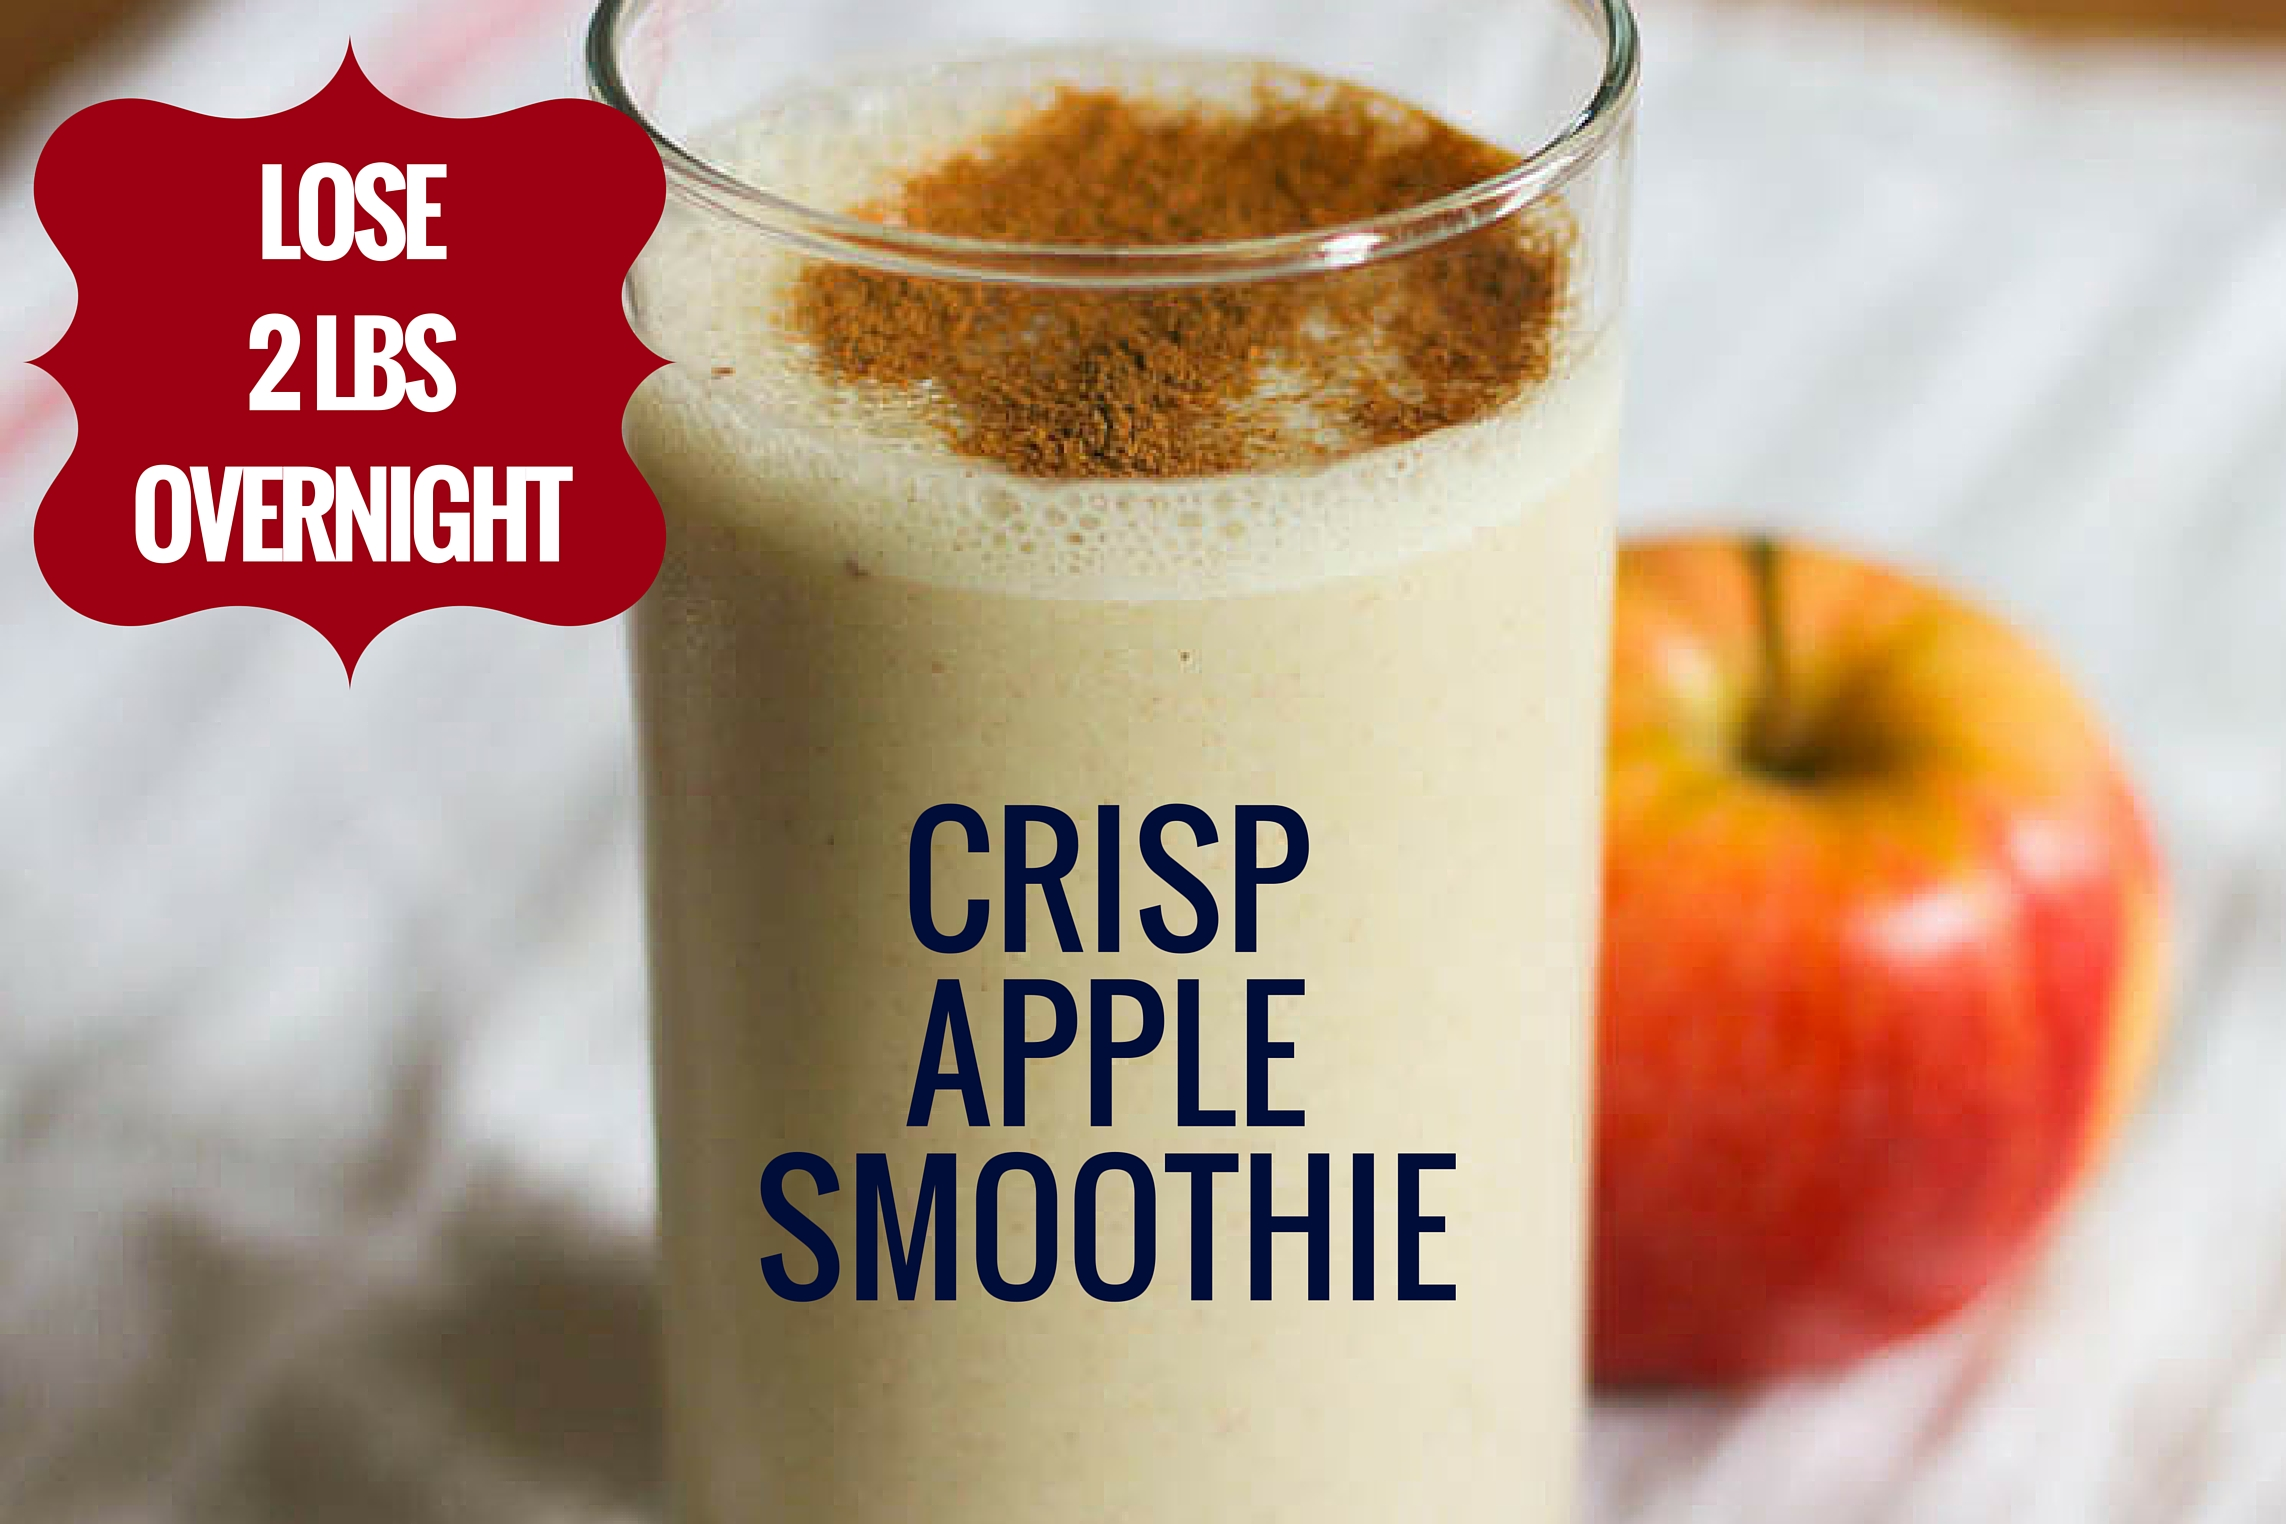 Crisp Apple Smoothie - Lose 2 LBS Overnight